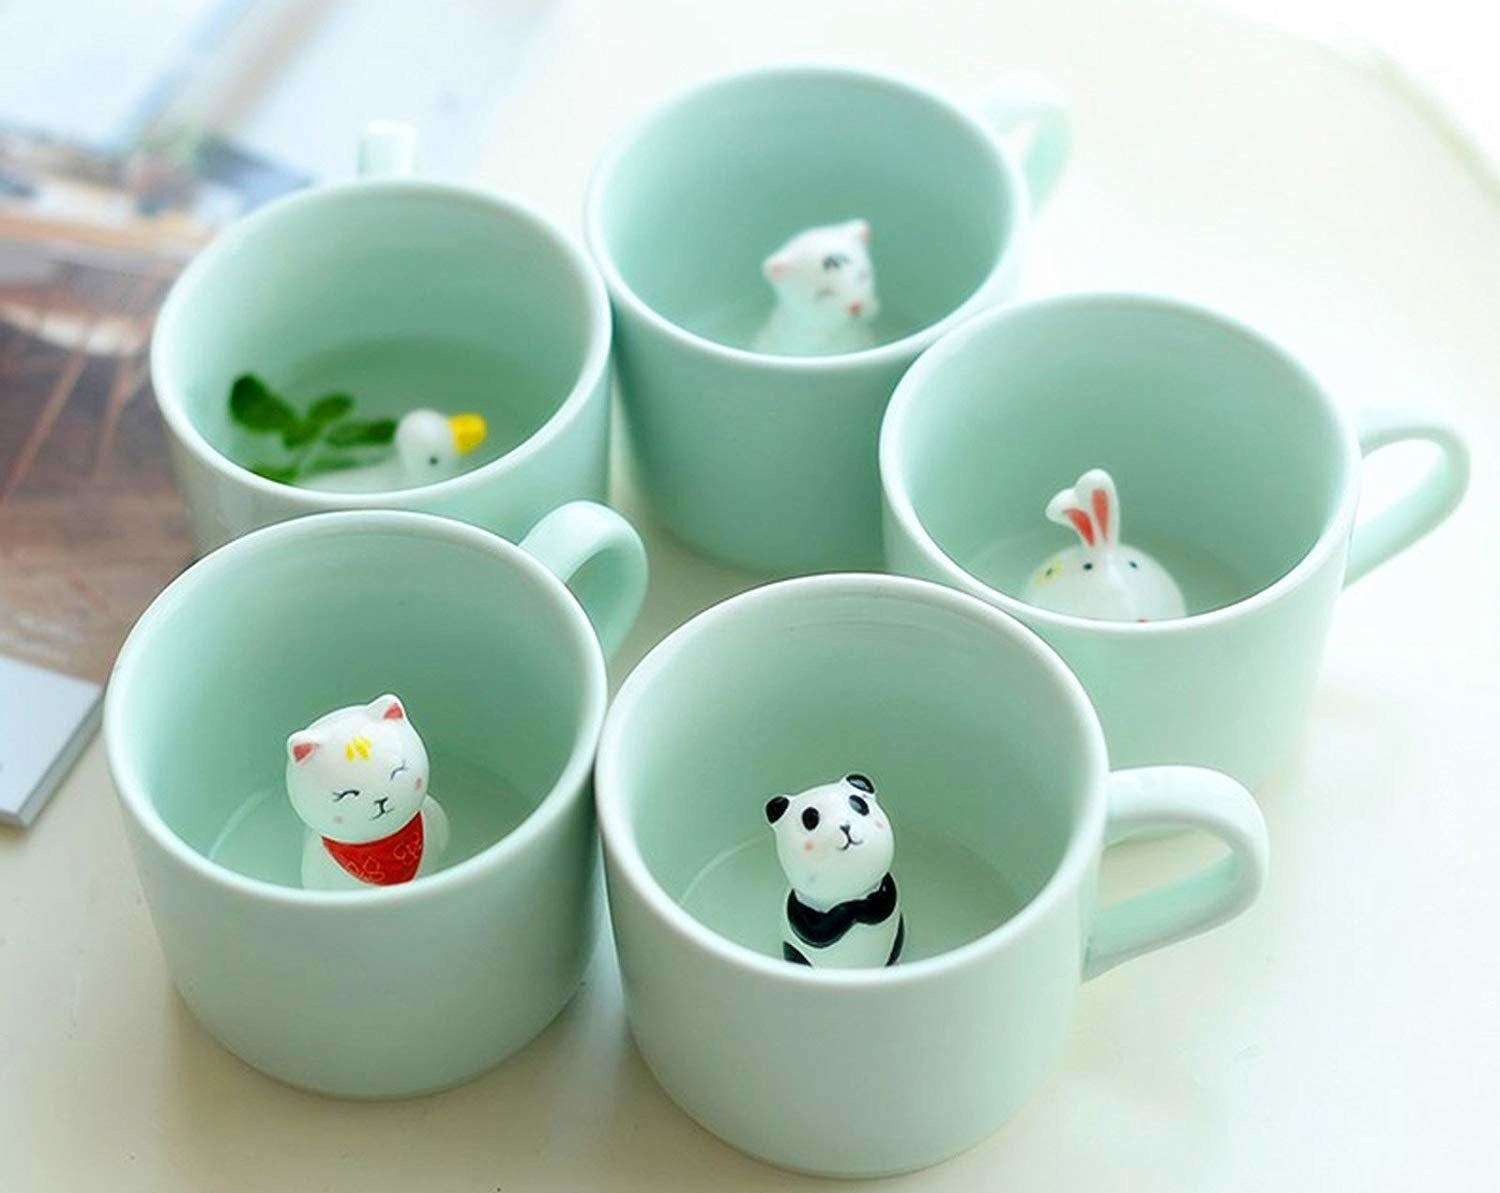 five of the small mint mugs, with a duck, cat, panda, bunny, and tiger figure at the bottom of them